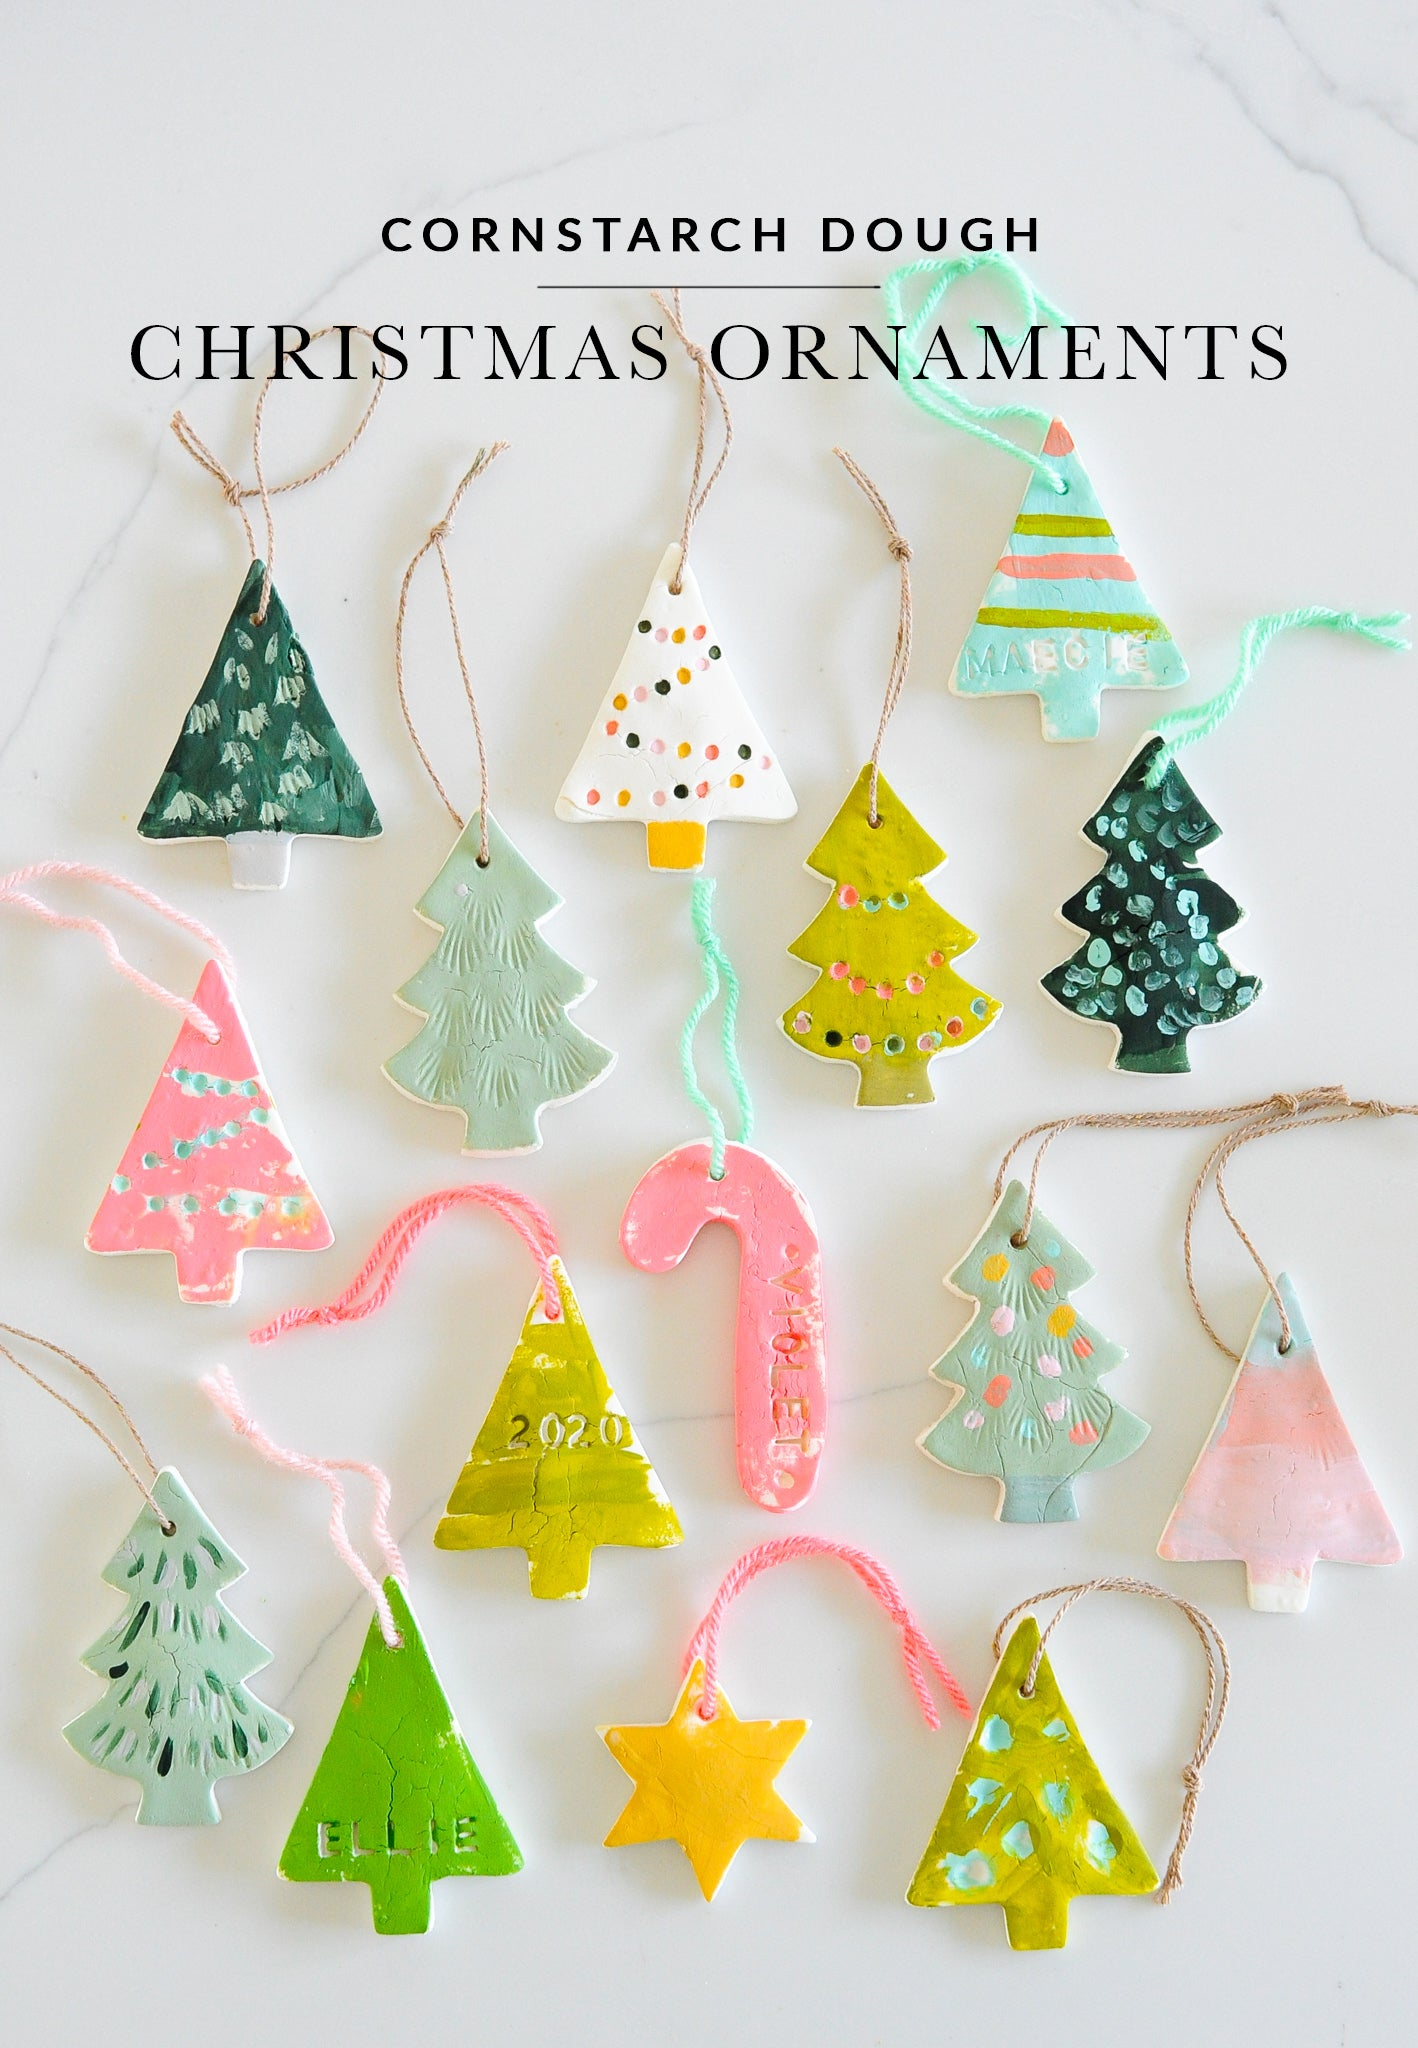 Cornstarch Dough Ornaments | Christmas Crafts for Kids | Shop Sweet Lulu